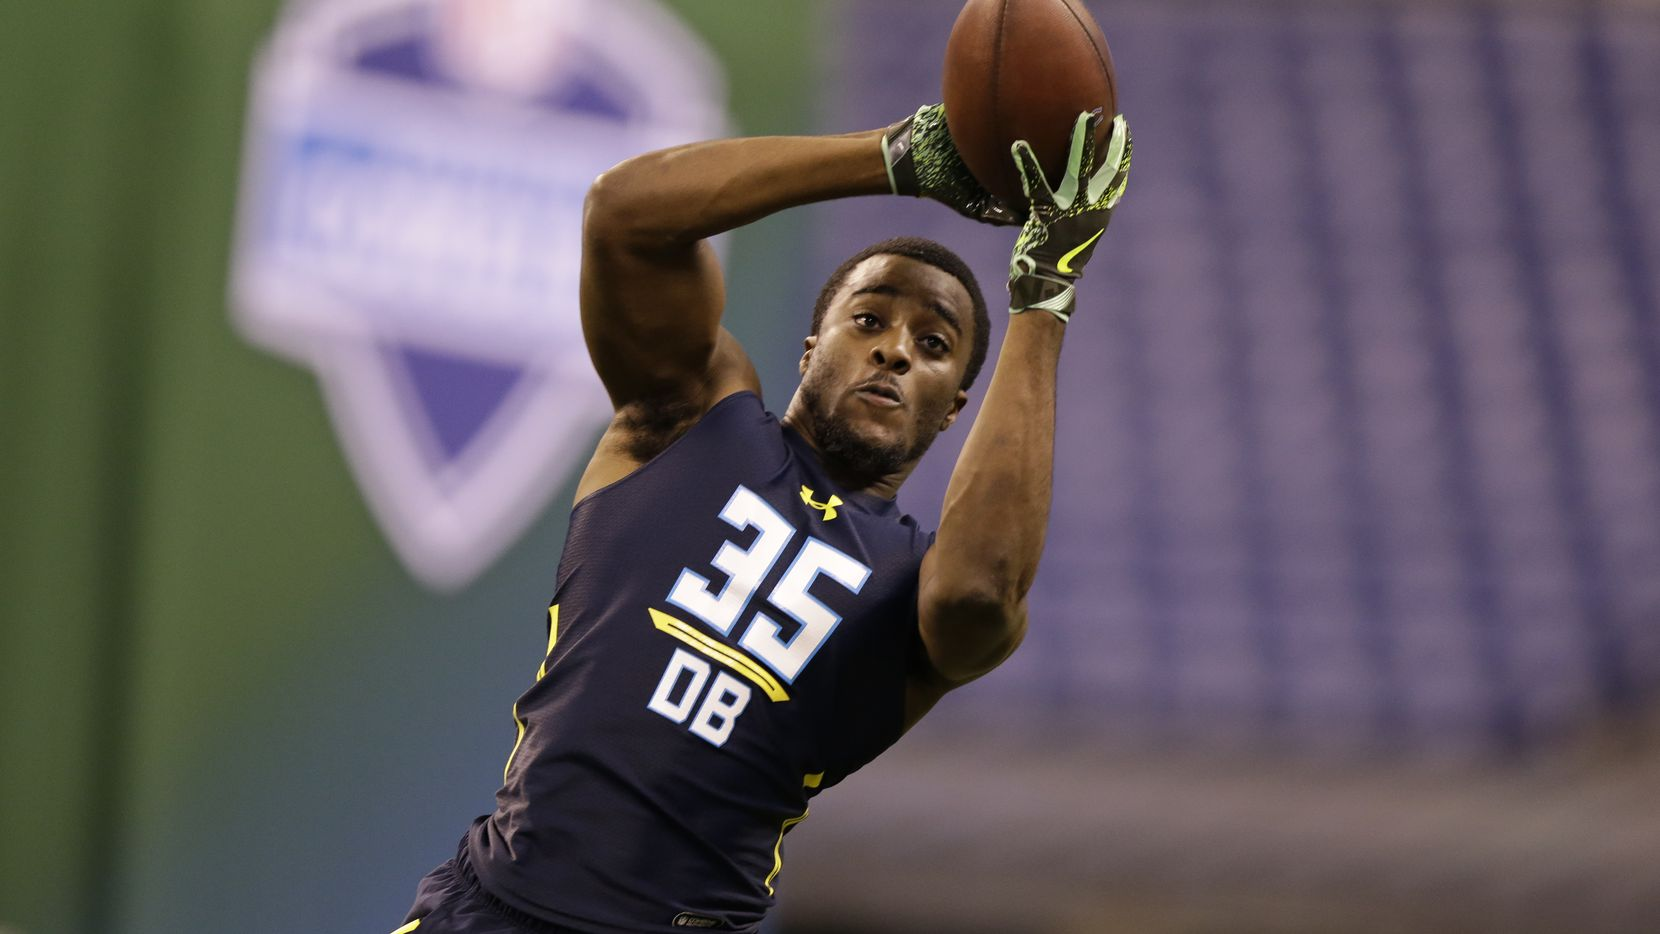 Michigan defensive back and Cowboys third-round pick Jourdan Lewis runs a drill at the NFL football scouting combine in Indianapolis March 6.